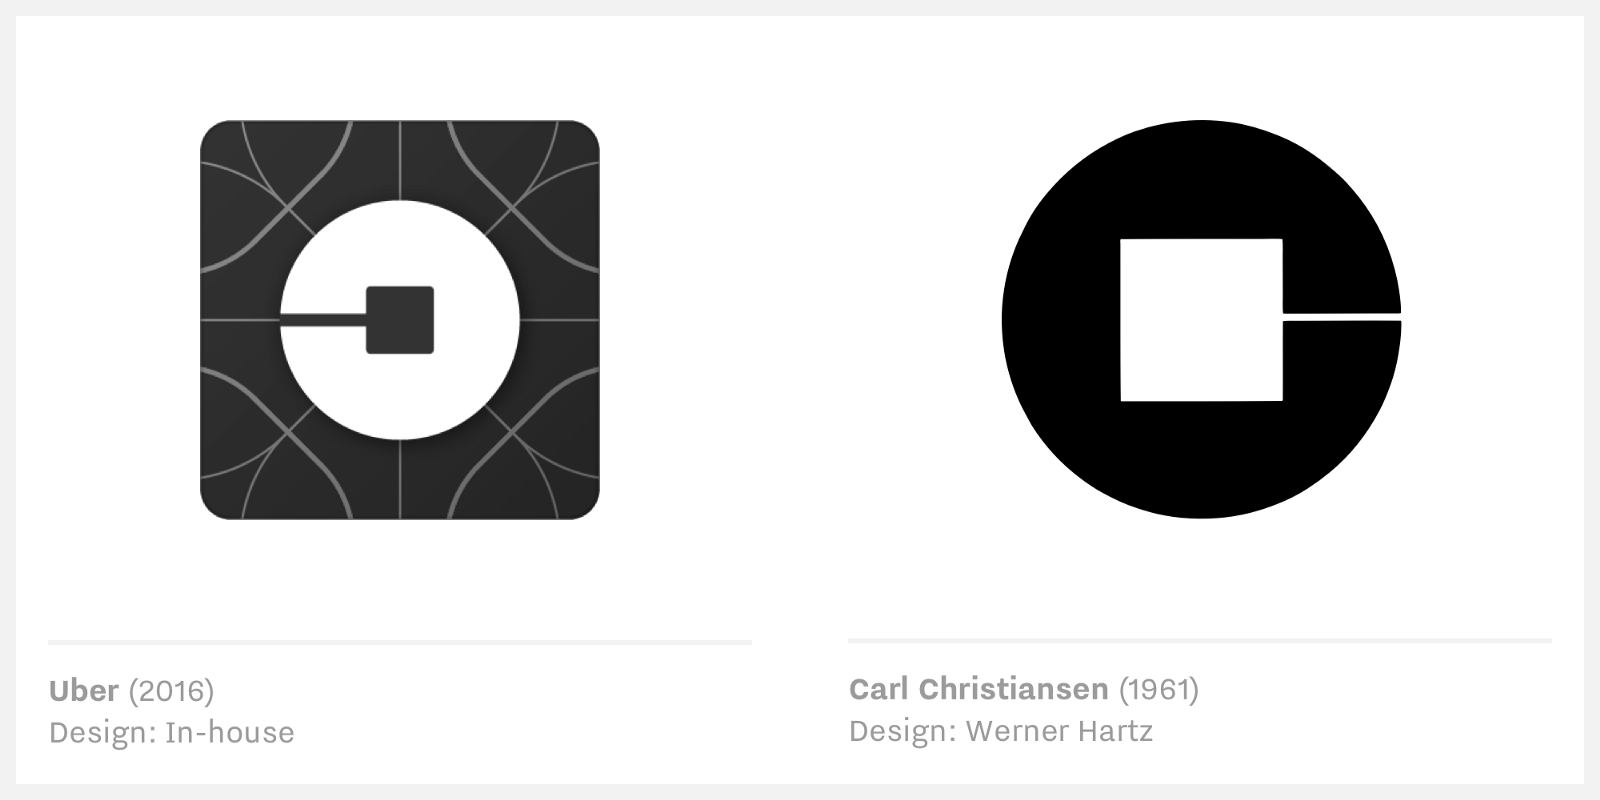 Uber vs Carl Christiansen